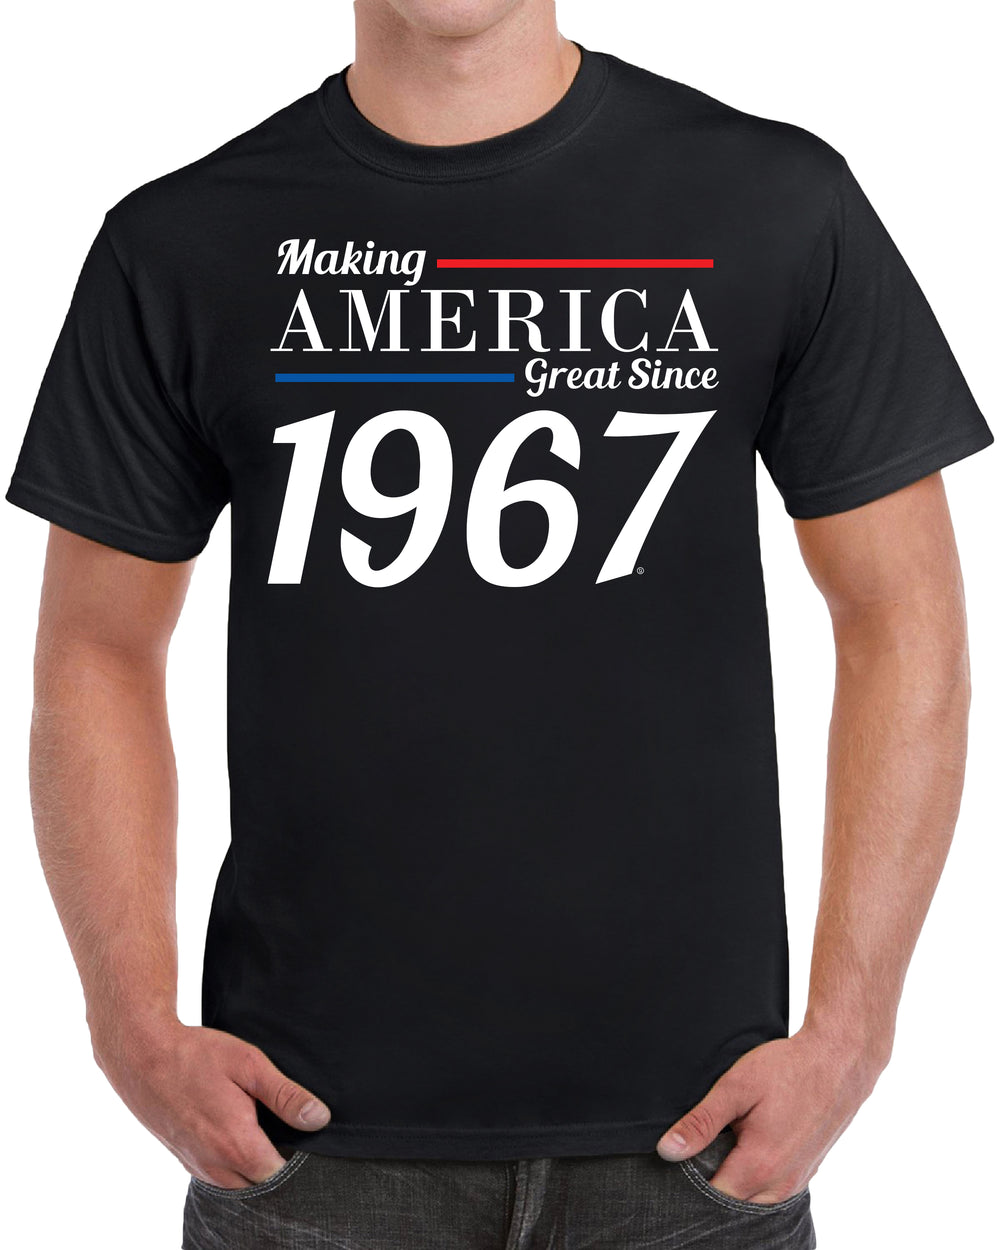 Making America Great Since 1967